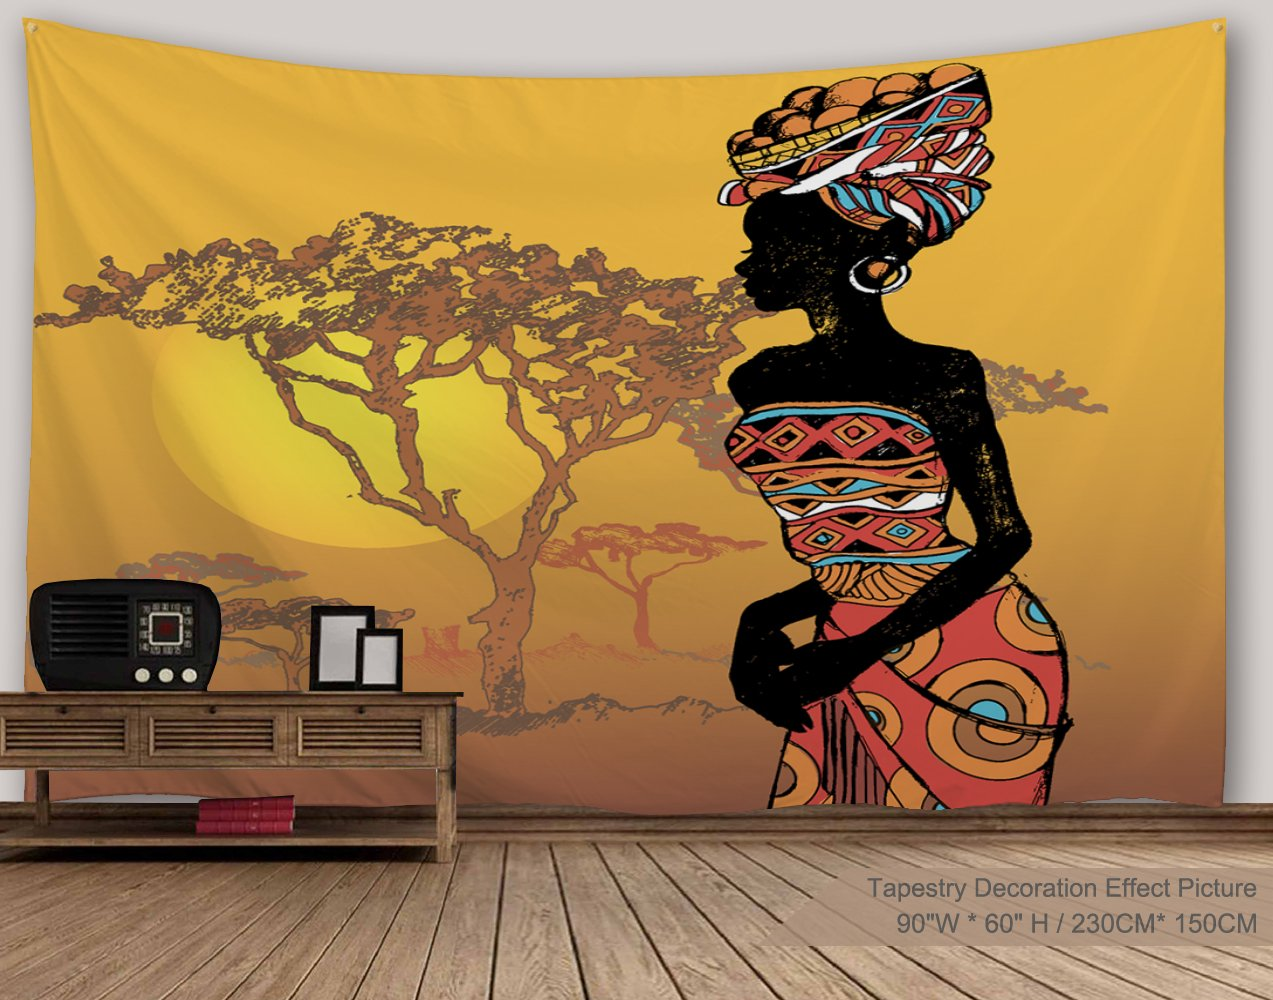 XINYI Home Wall Hanging Nature Art Polyester Fabric African Woman Theme Tapestry, Wall Decor For Dorm Room, Bedroom, Living Room, Nail Included - 90'' W x 60'' L (230cmx150cm) - Woman Wilderness